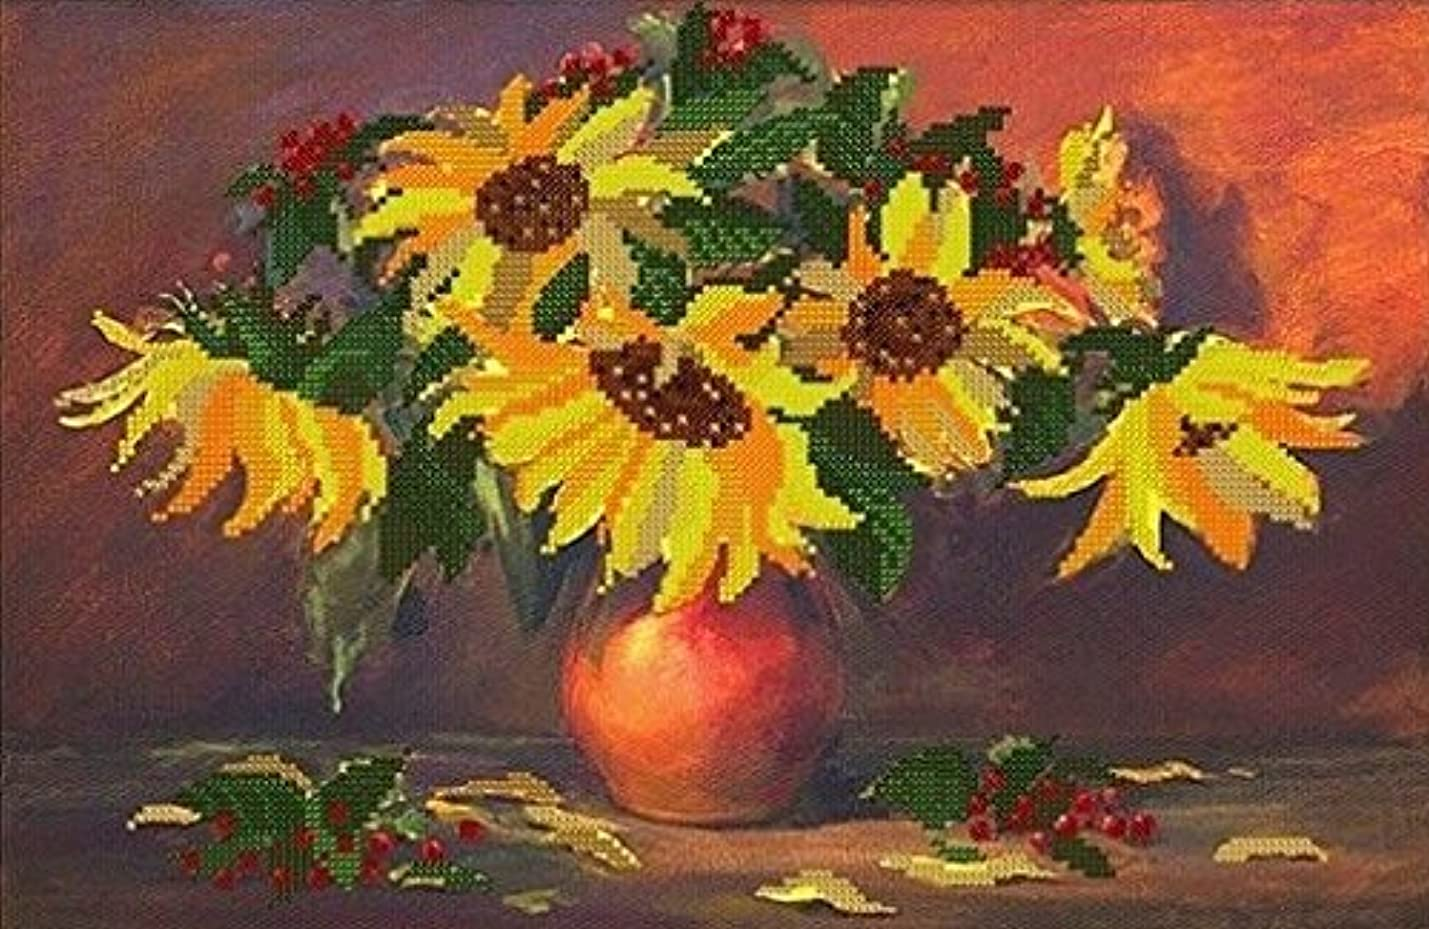 Bead Embroidery kit Sunflowers Beaded Stitching Floral Pattern Needlepoint Handcraft Tapestry kit wgbidgkuzkxnh310